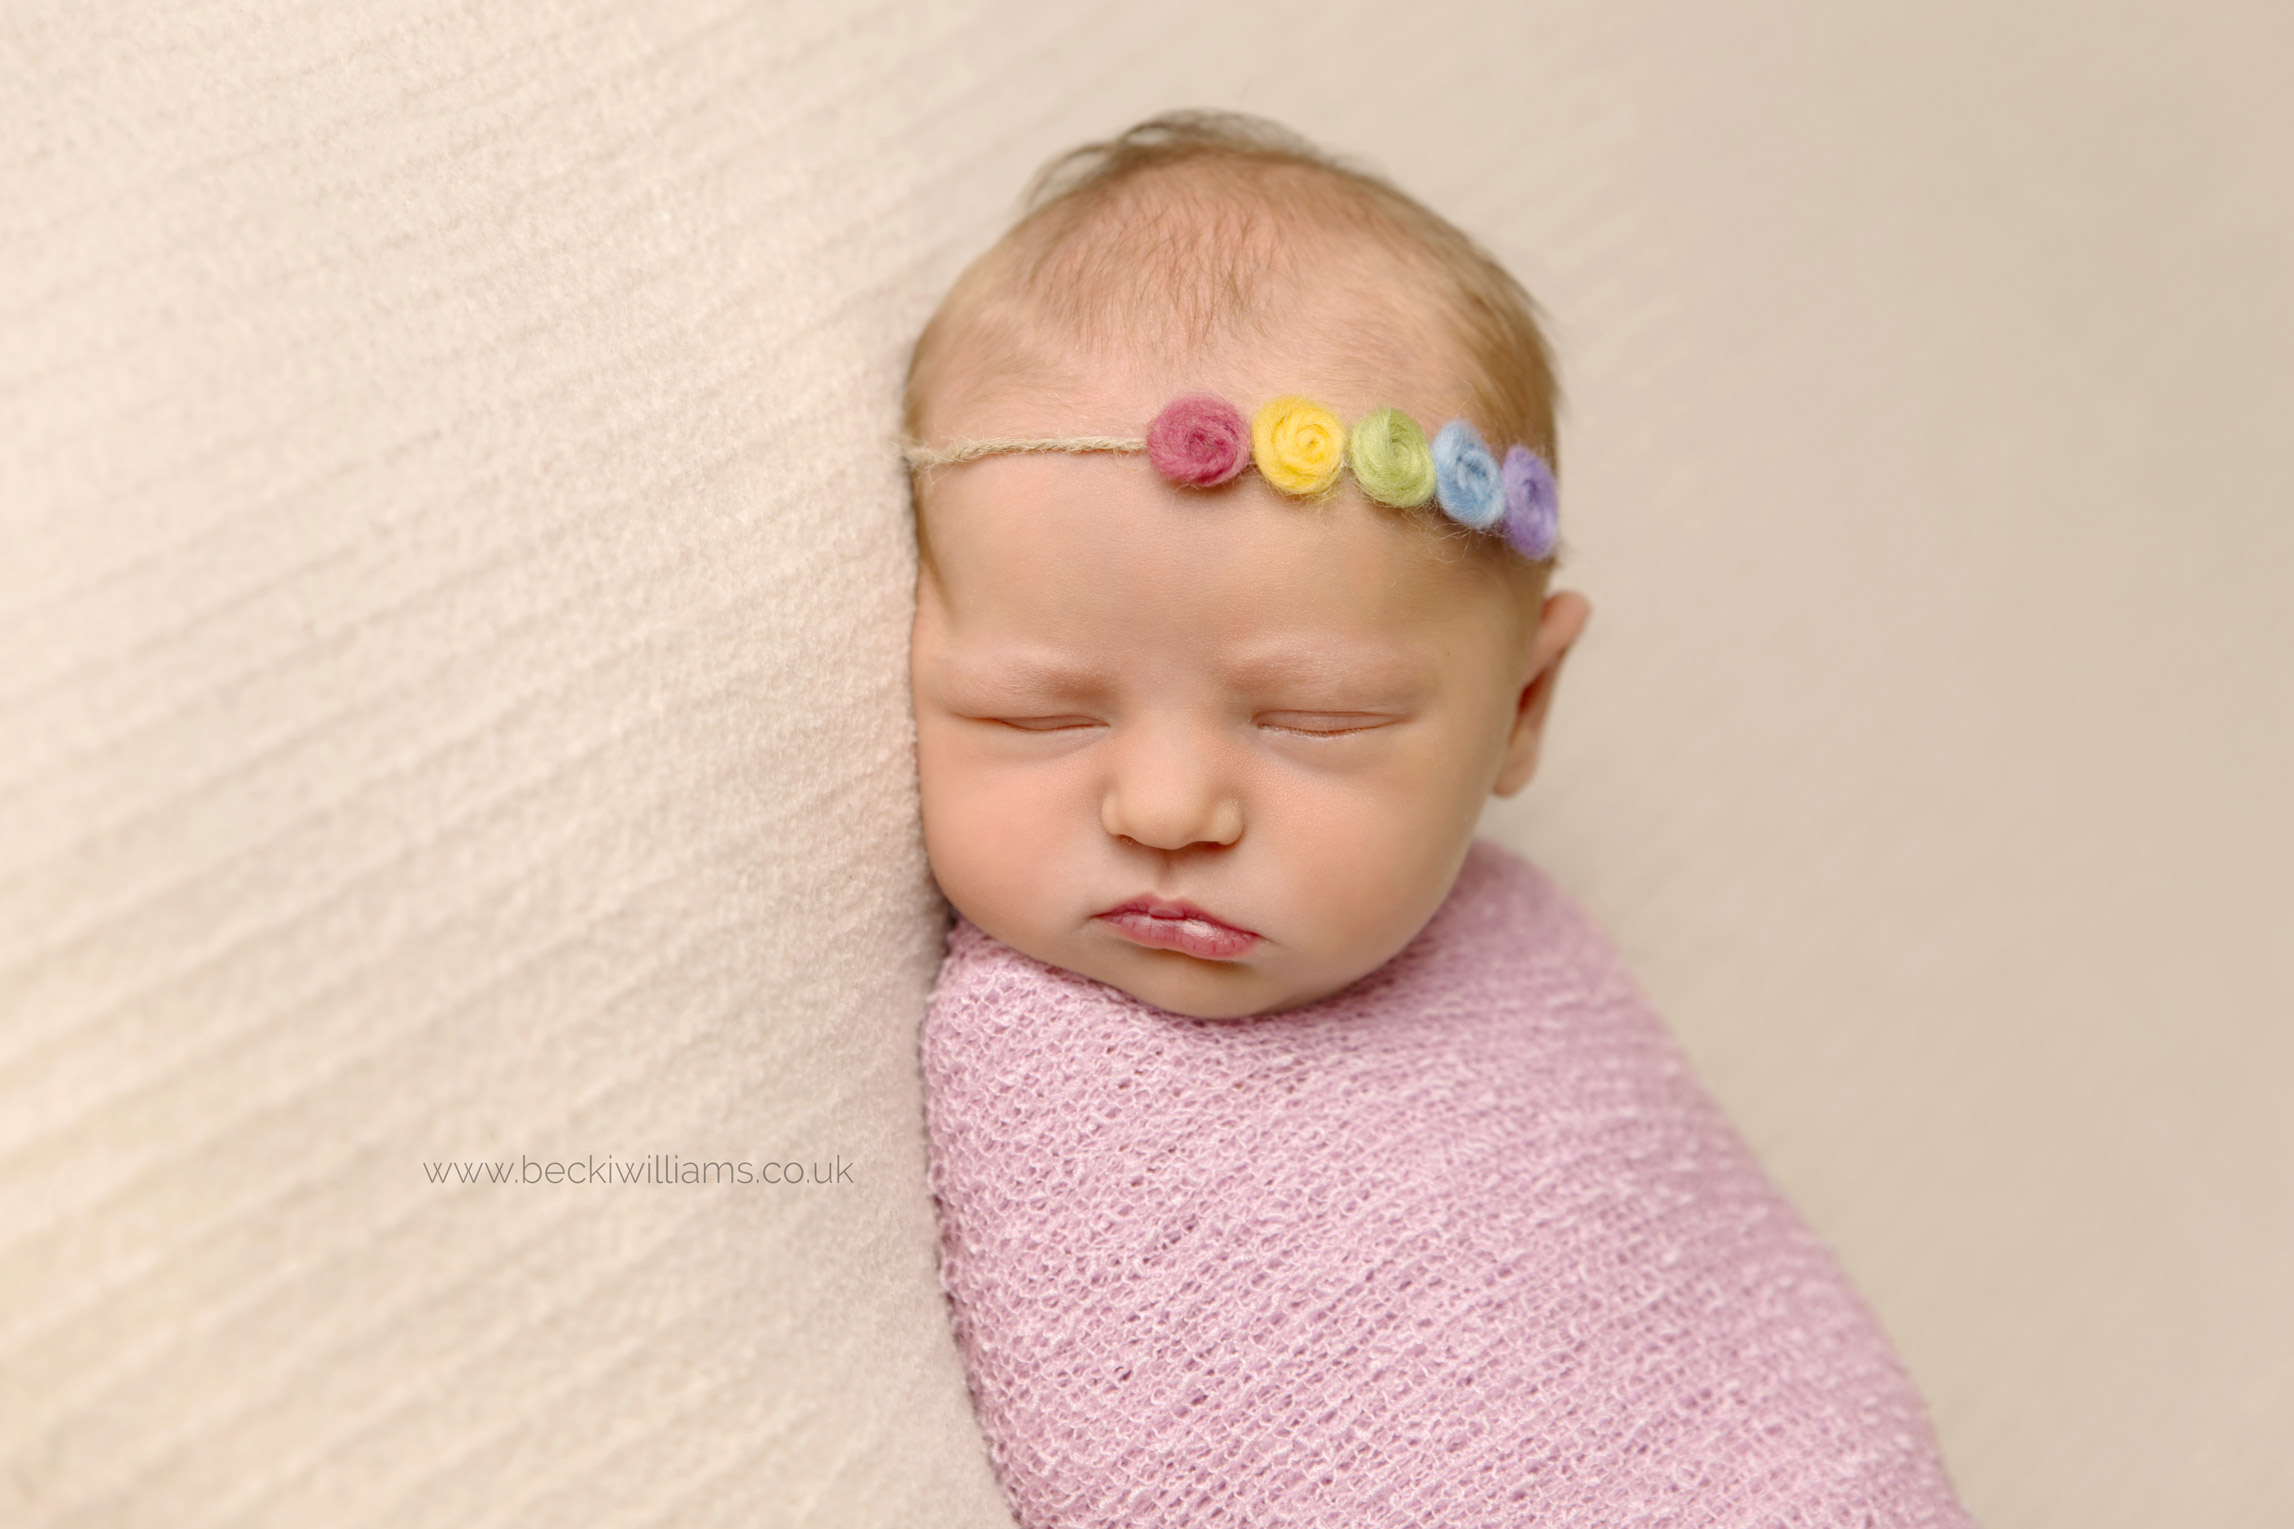 sleeping newborn baby wrapped in a pink blanket with a rainbow coloured headband on